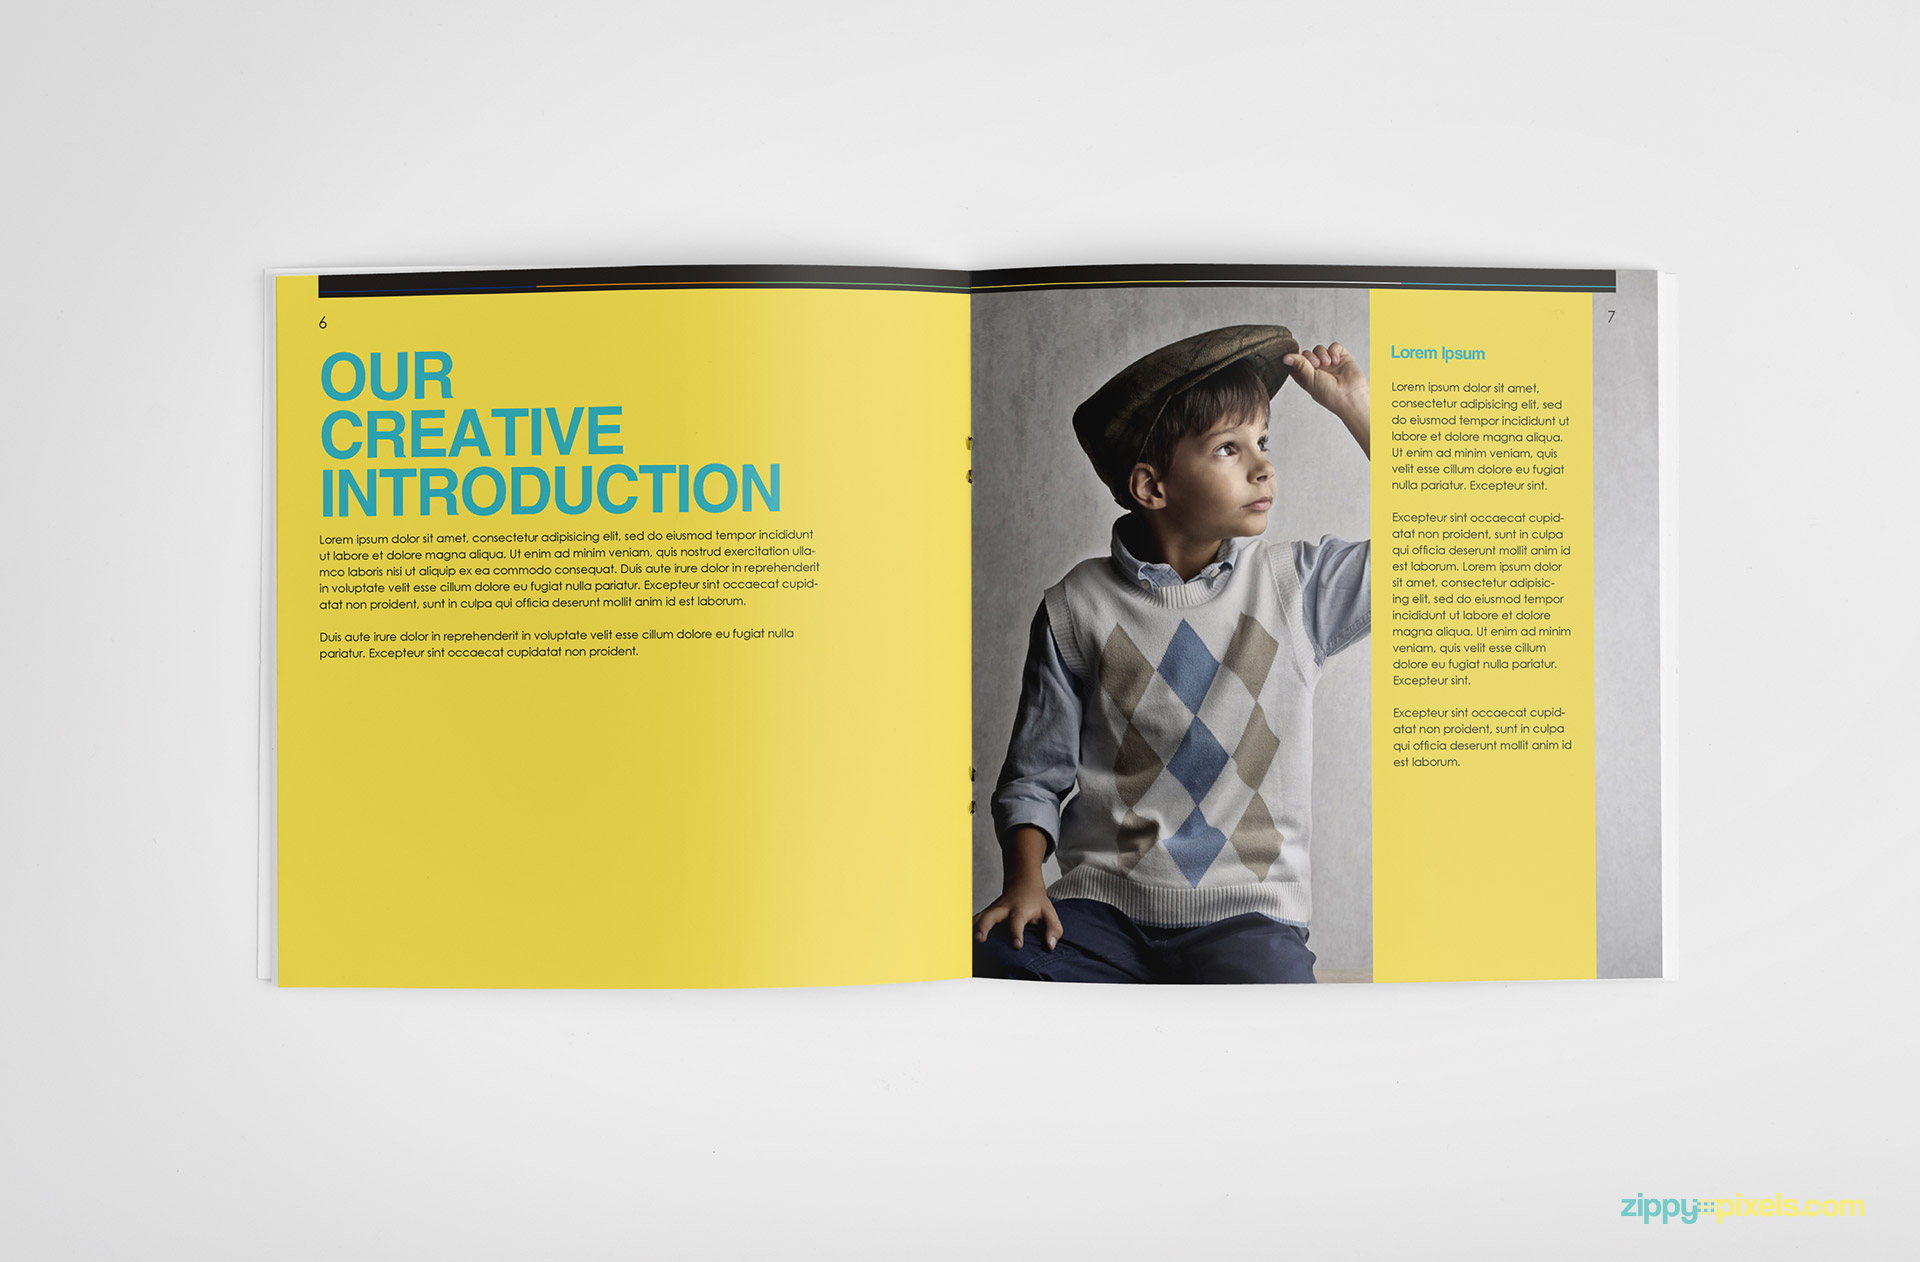 07-brand-book-12-our-creative-introduction